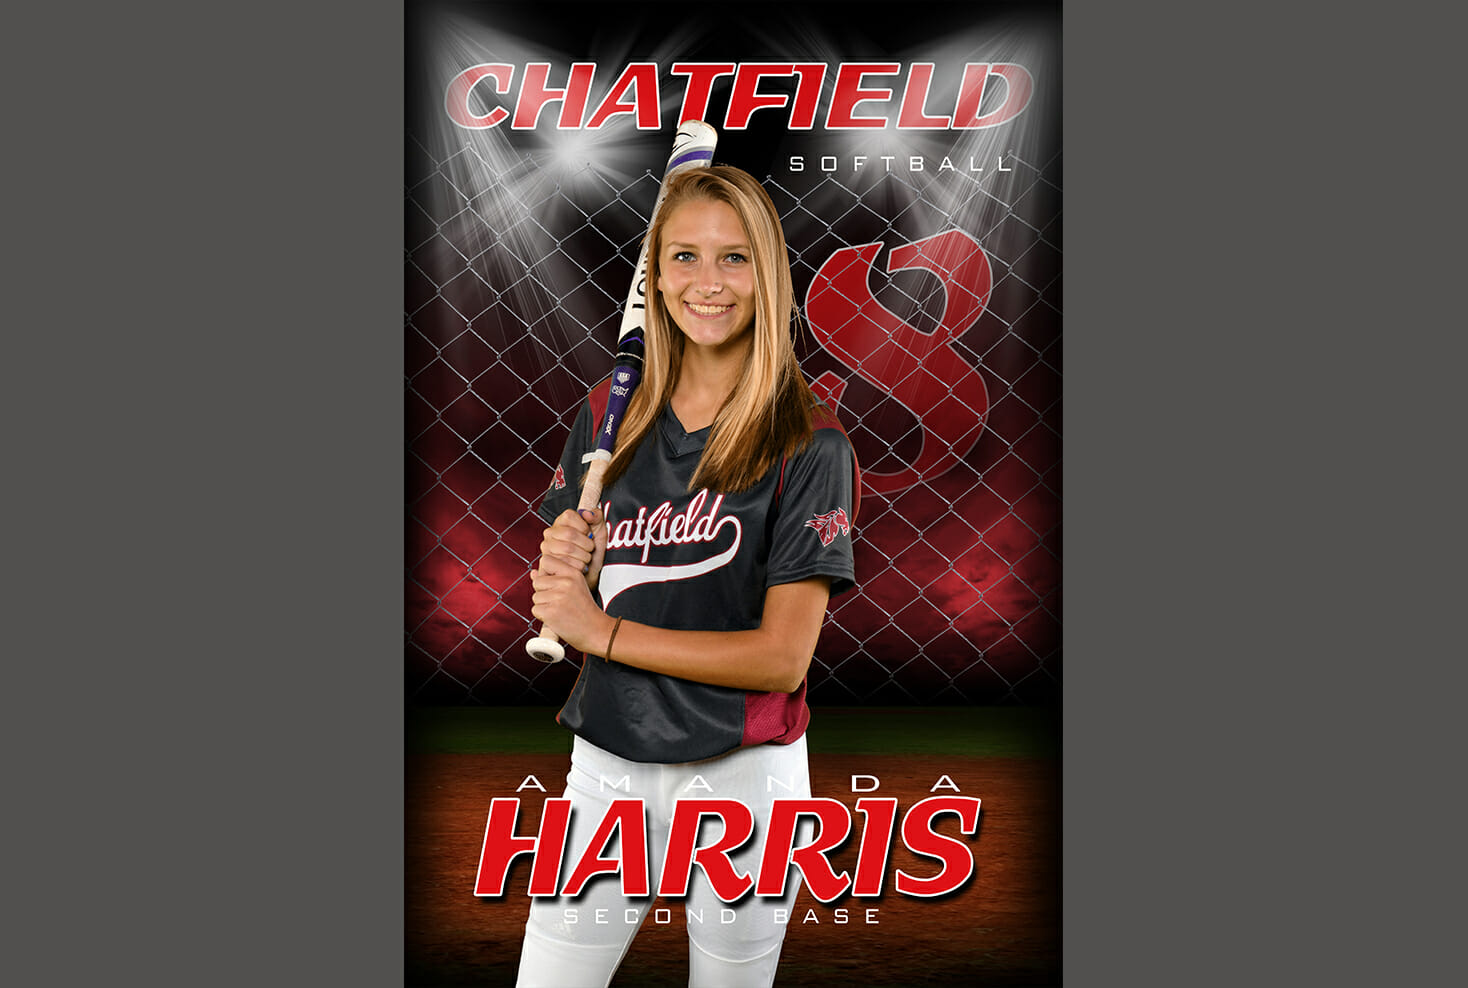 Chatfield Senior High School Softball individual sports photo